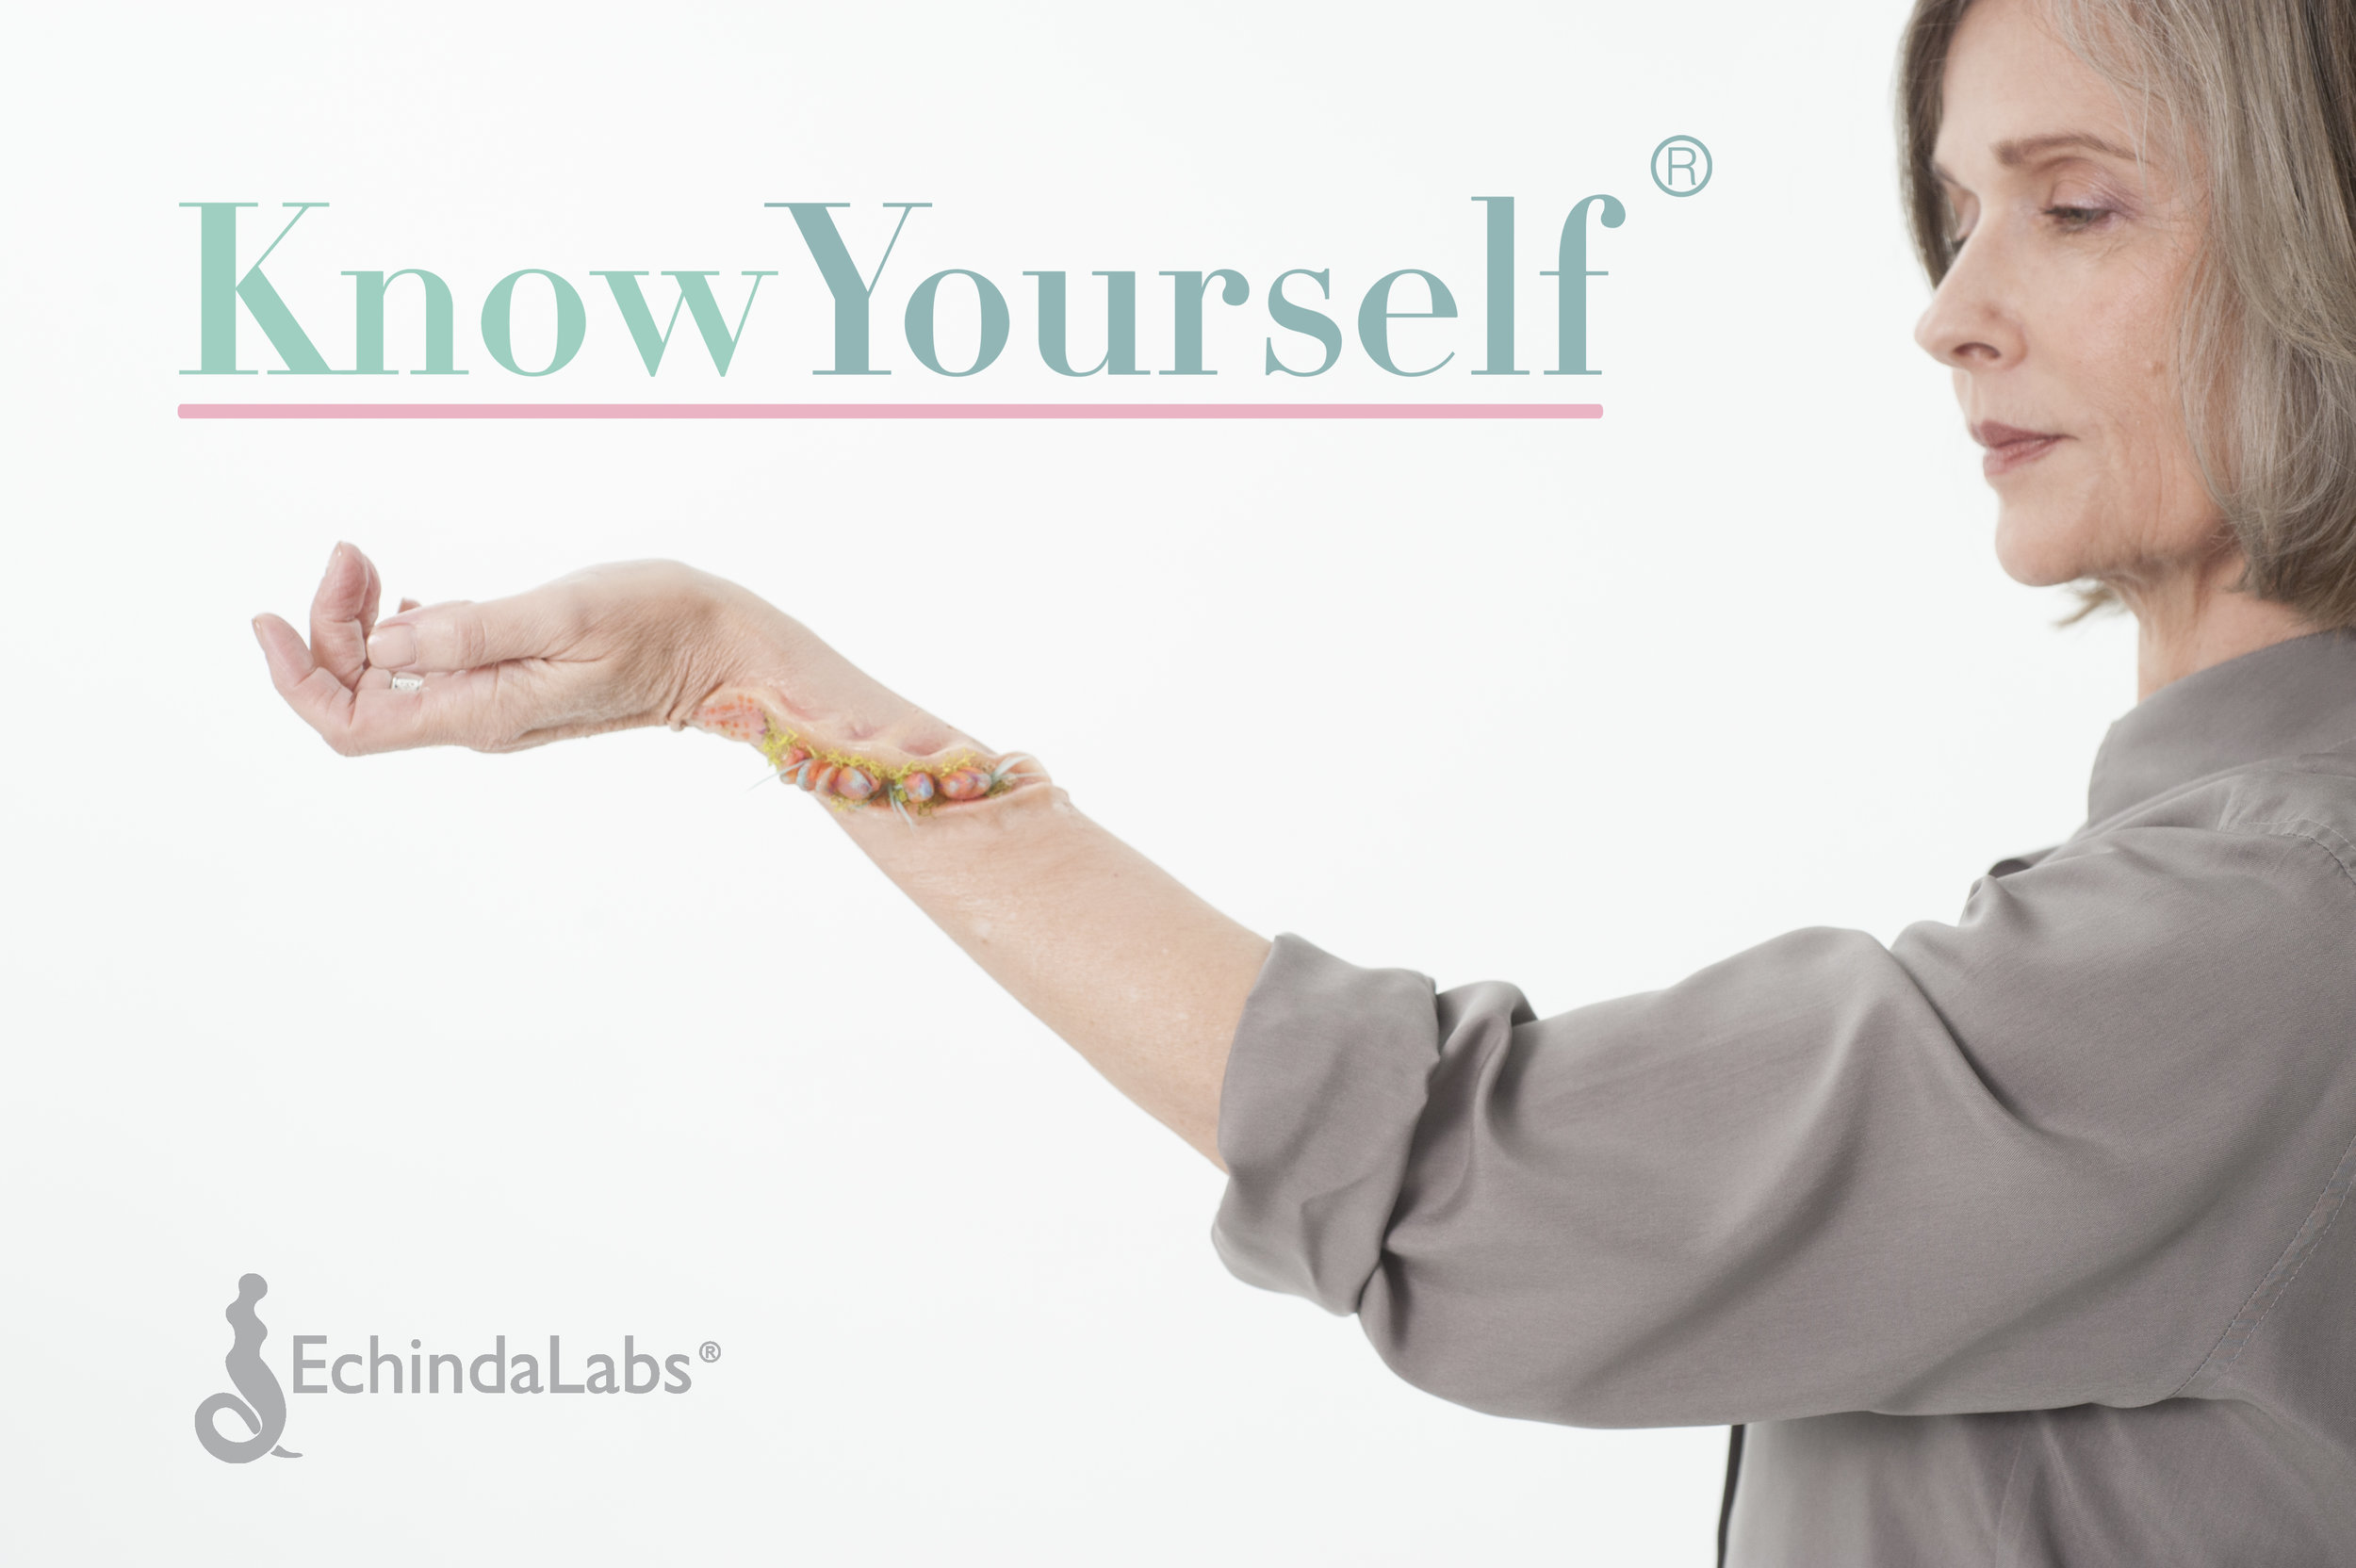 EchindaLabs KnowYourself Alison Ad.jpg